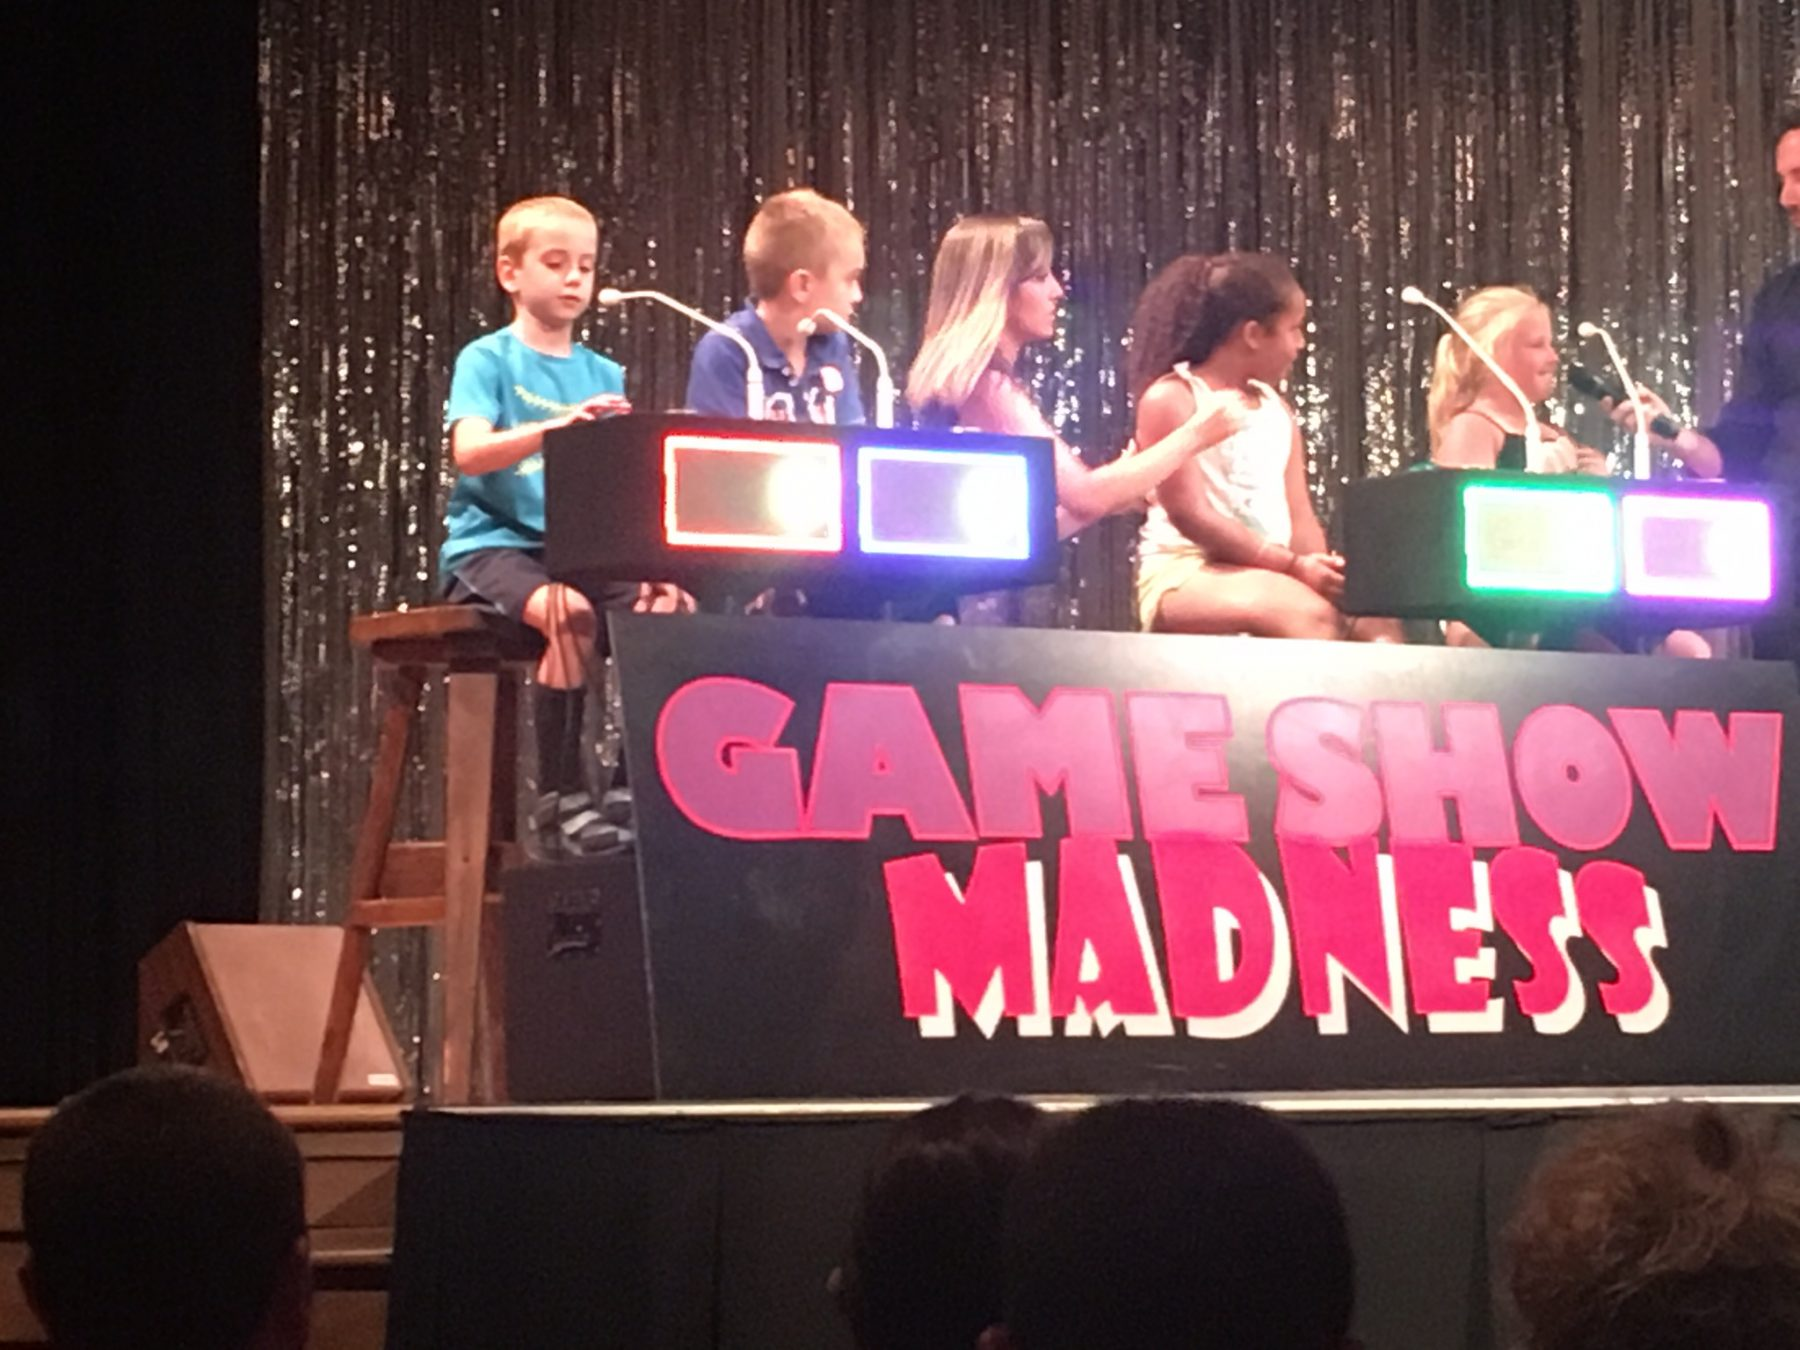 Kids on stage for game show